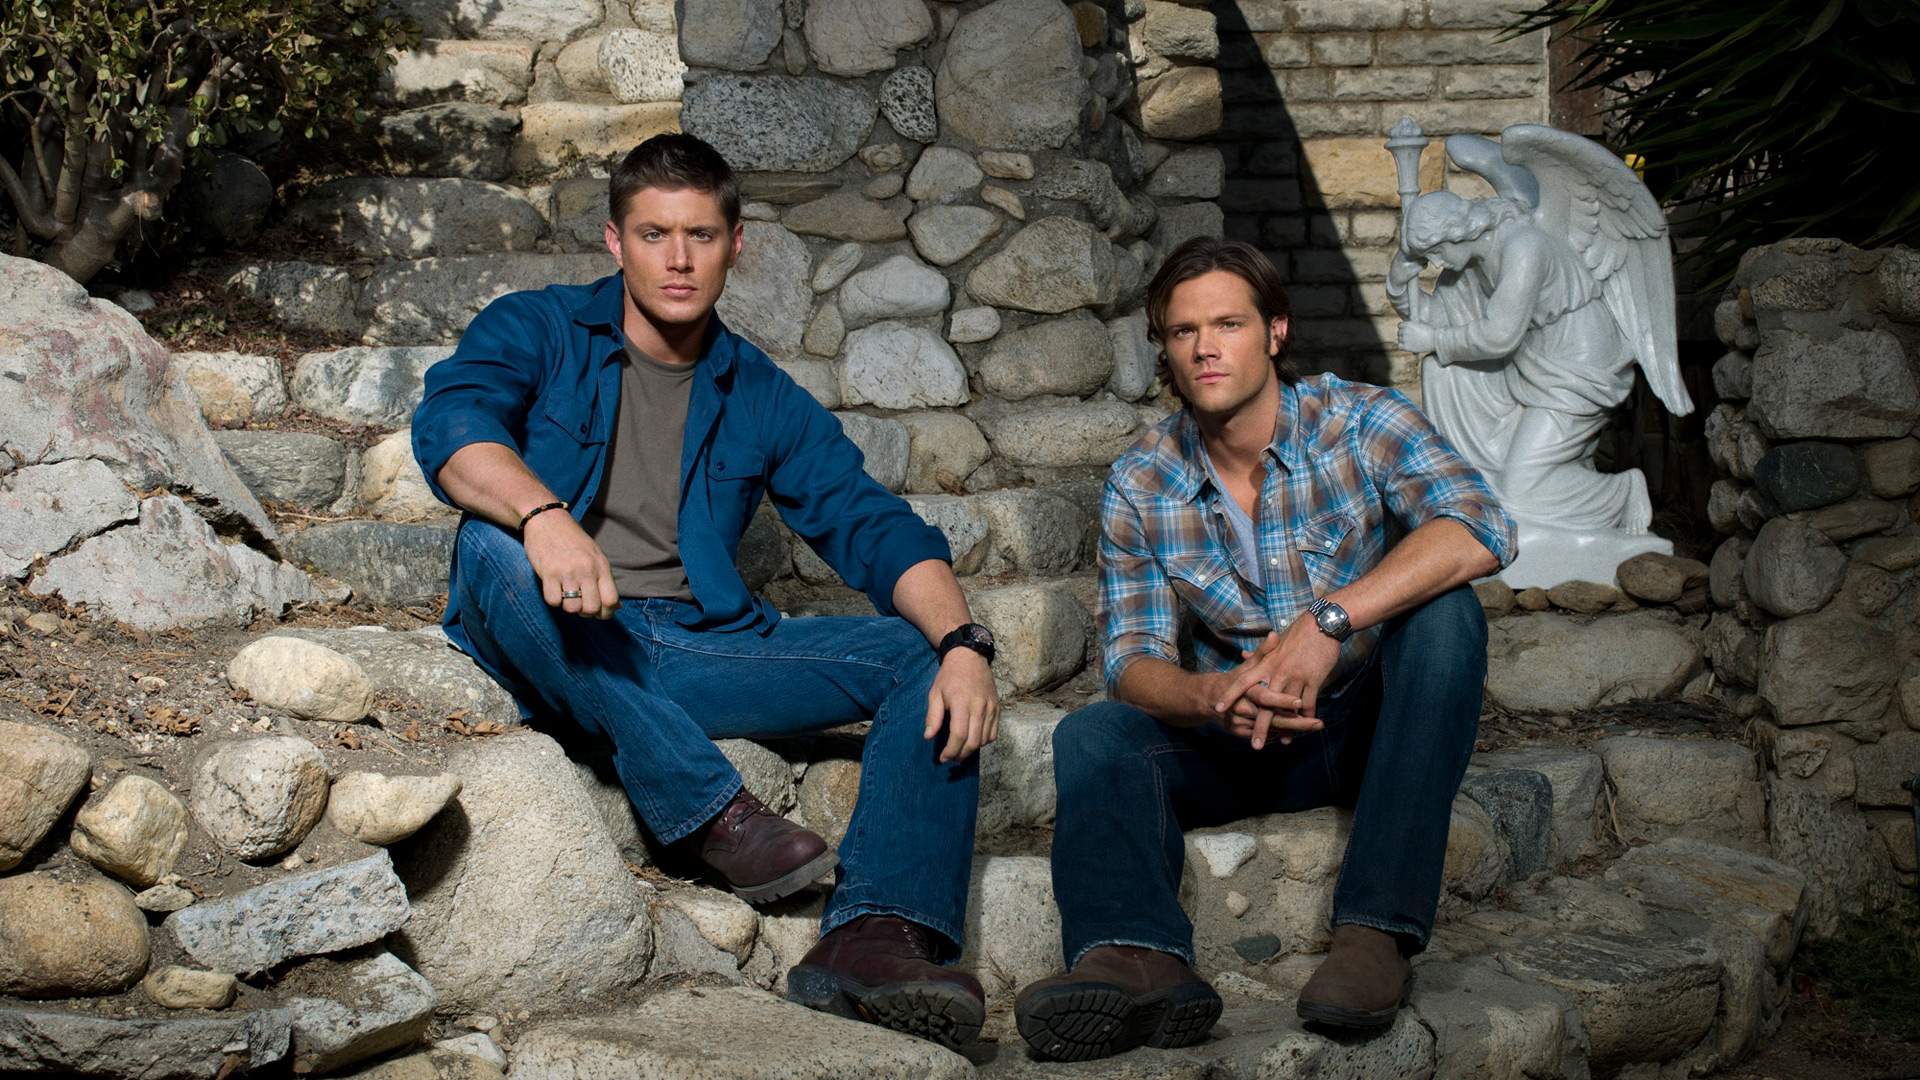 A look back at the many times the Winchester brothers traveled to hell and back in order to save the world.